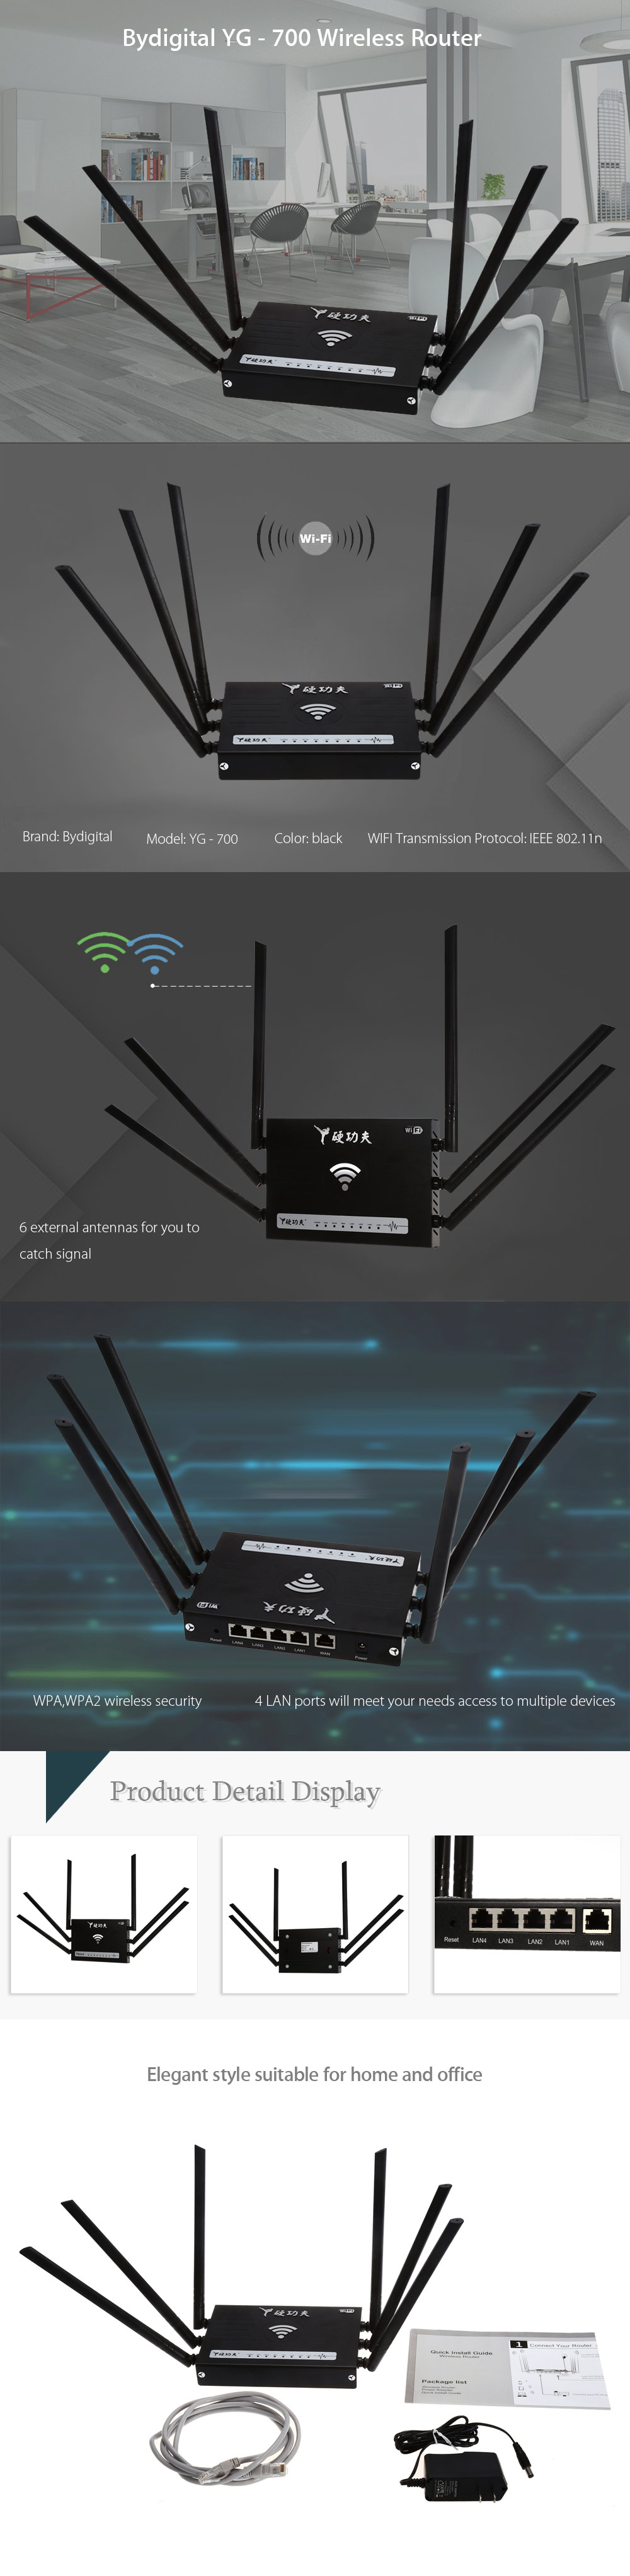 Diagram Also Button On Gear Wireless Router Likewise Wireless Router